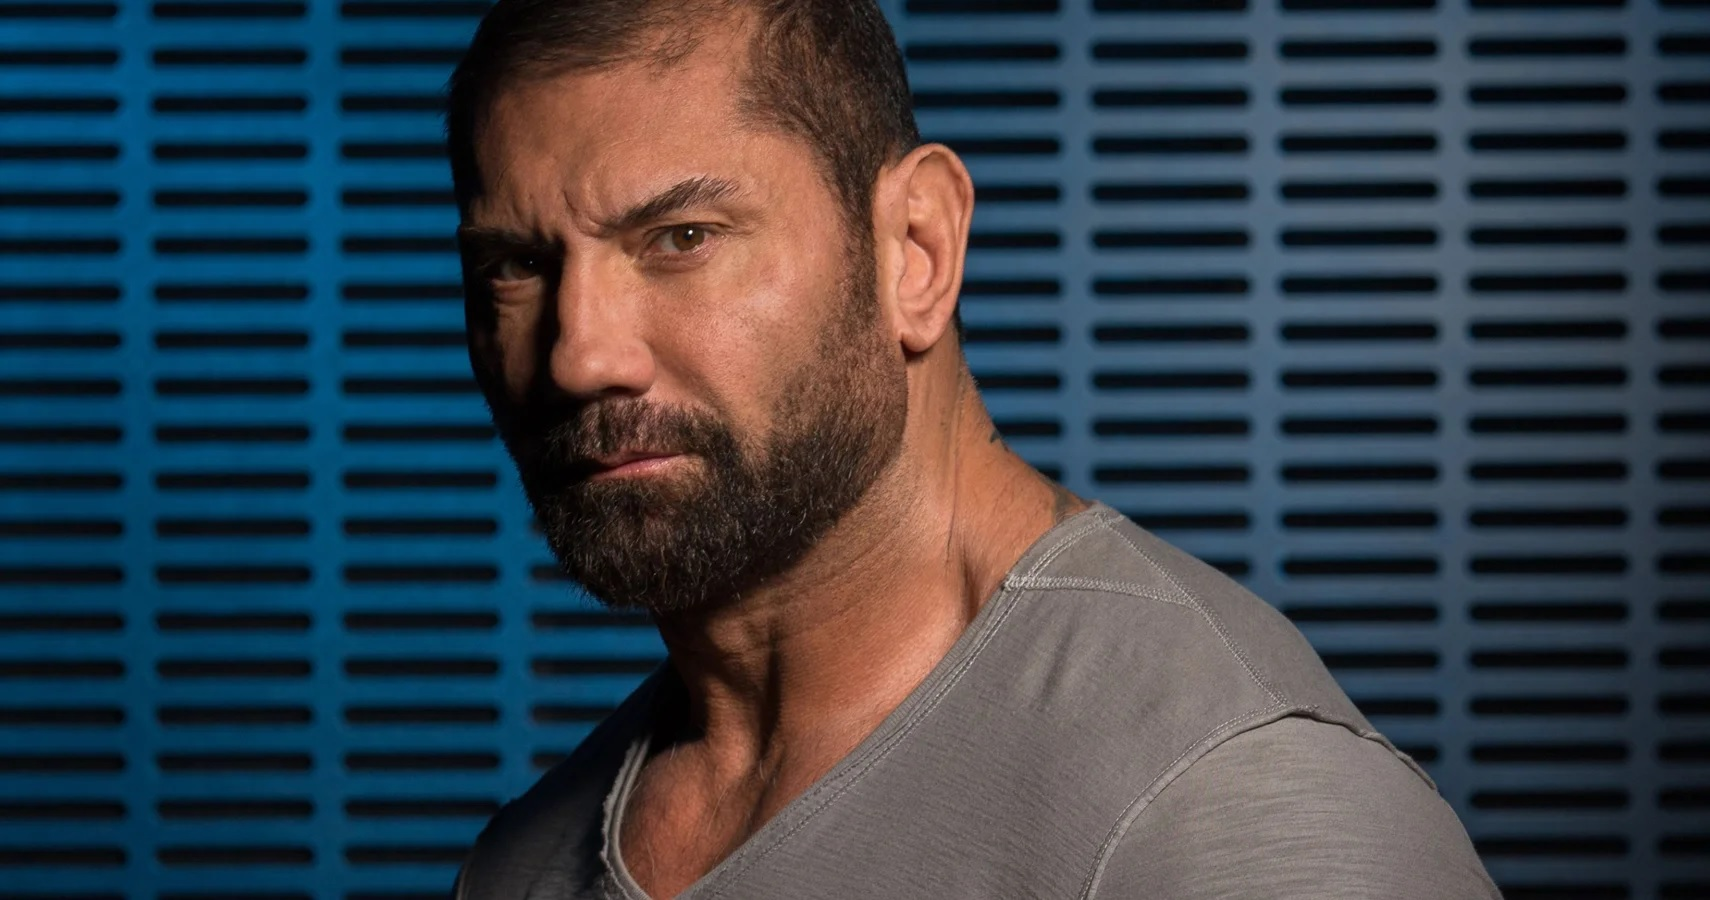 Dave Bautista will be playable in Gears 5